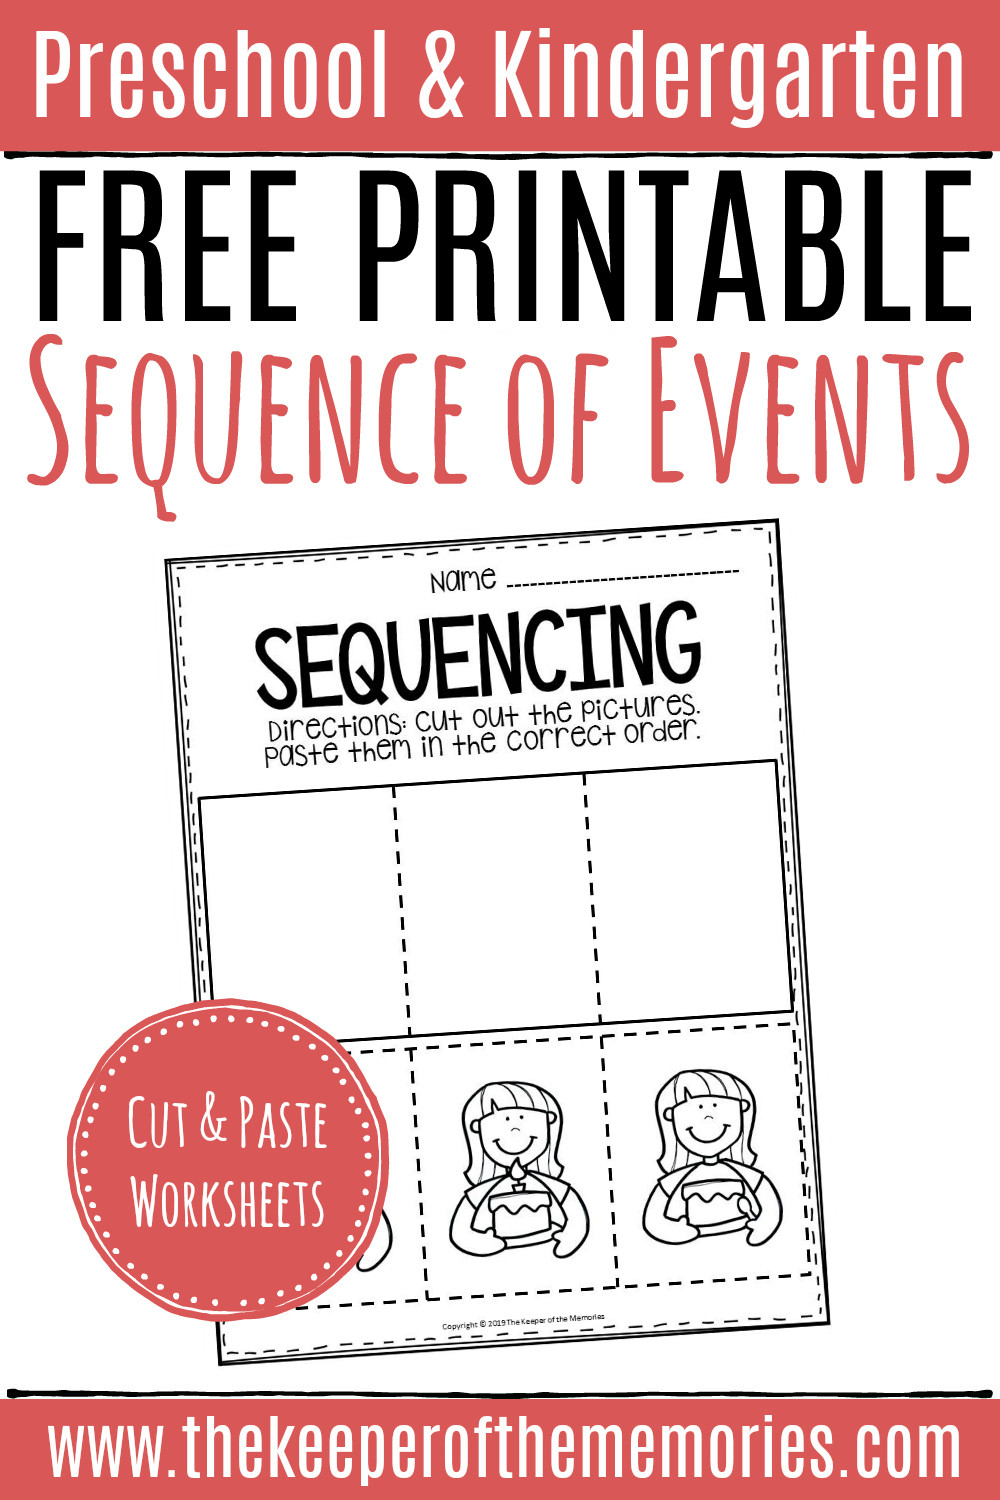 Printable Sequencing Worksheets Free Printable Sequence events Worksheets Sequencing Cut